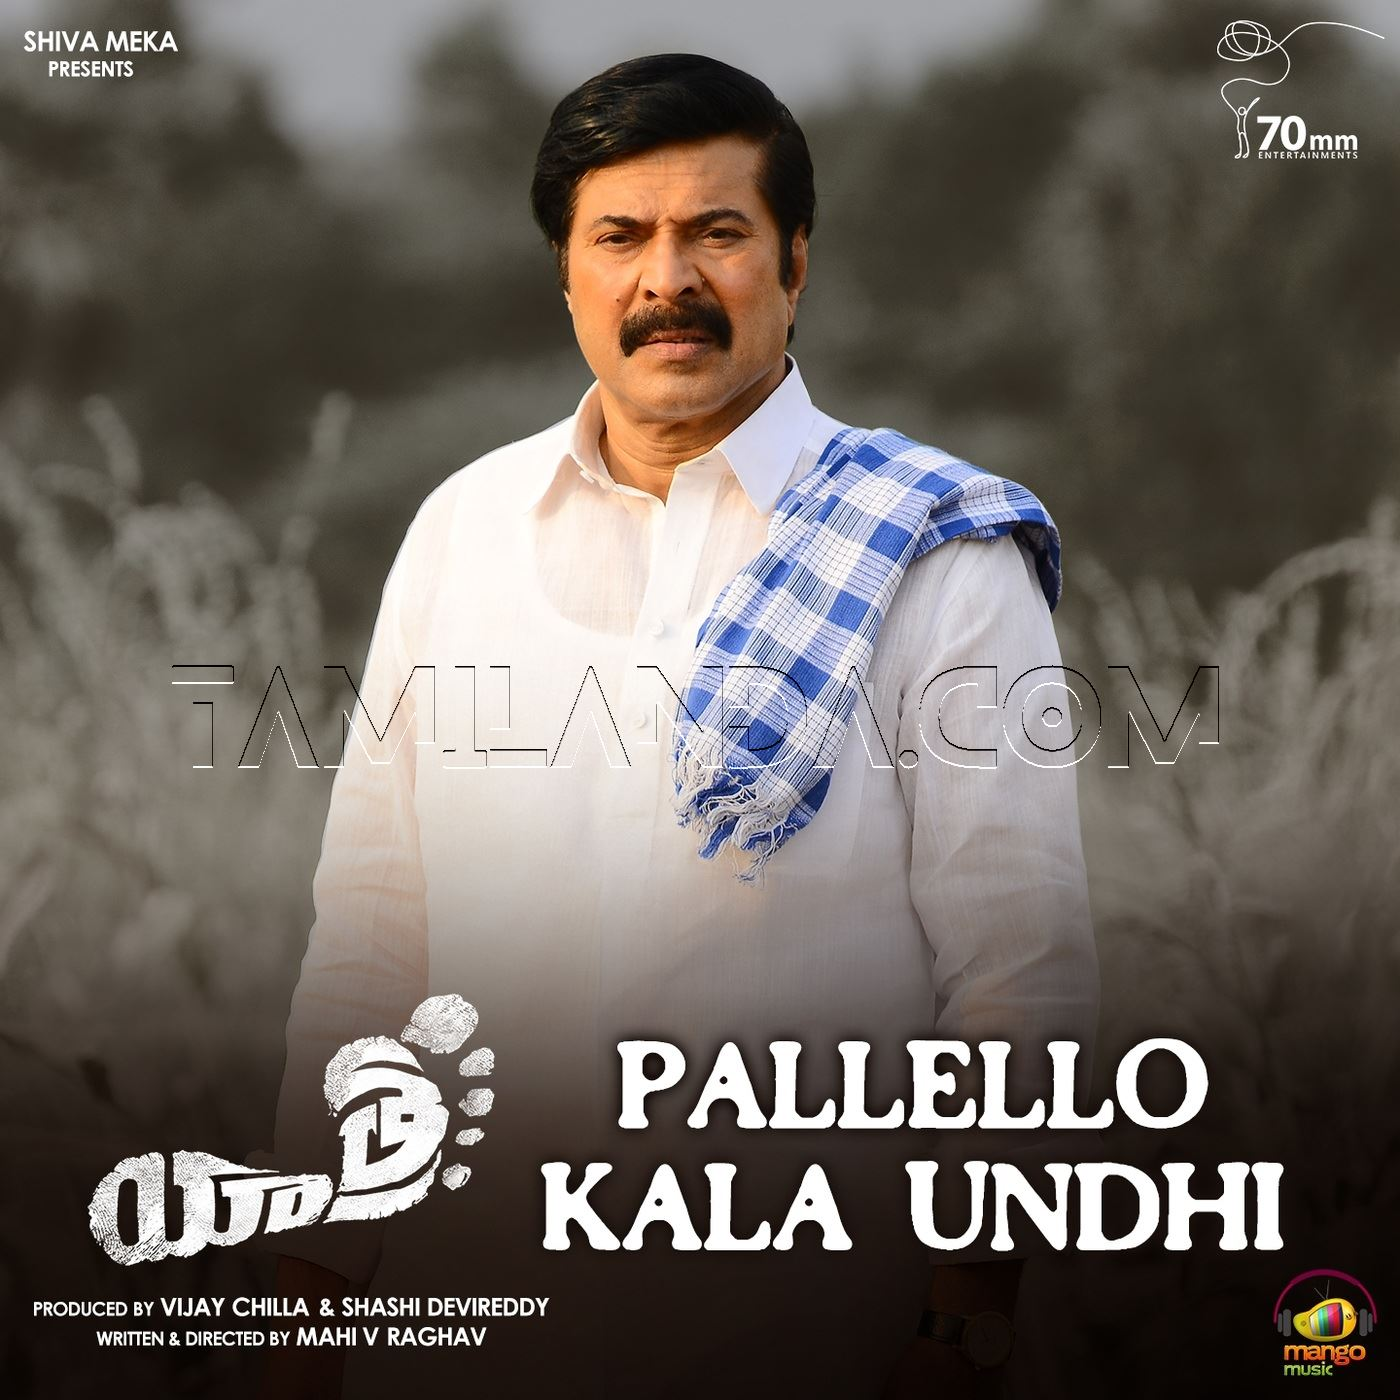 Pallello Kala Undhi (From Yatra) – Single FLAC Song (2019)